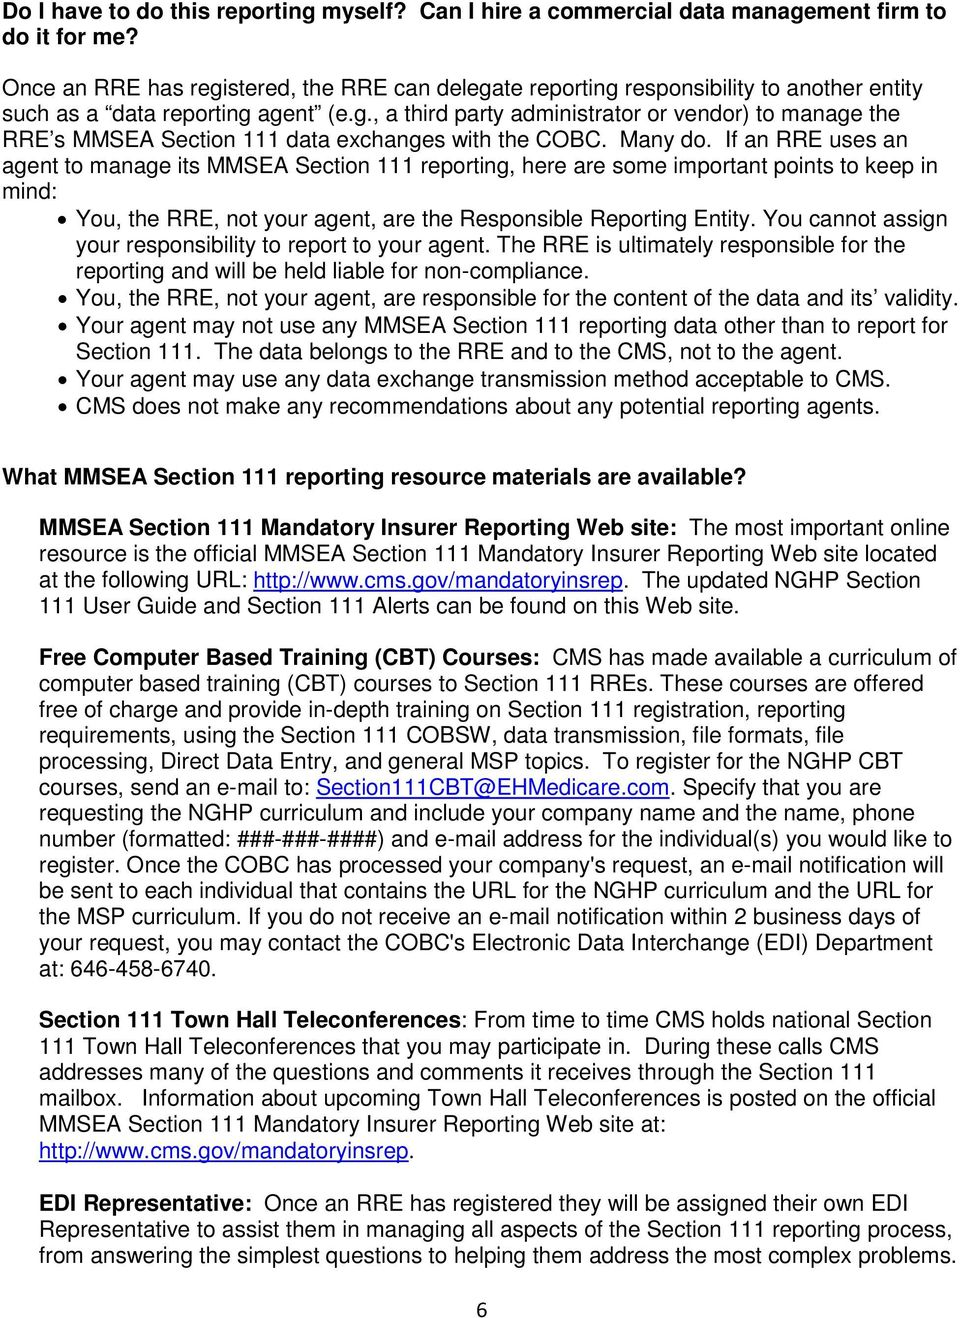 Many do. If an RRE uses an agent to manage its MMSEA Section 111 reporting, here are some important points to keep in mind: You, the RRE, not your agent, are the Responsible Reporting Entity.